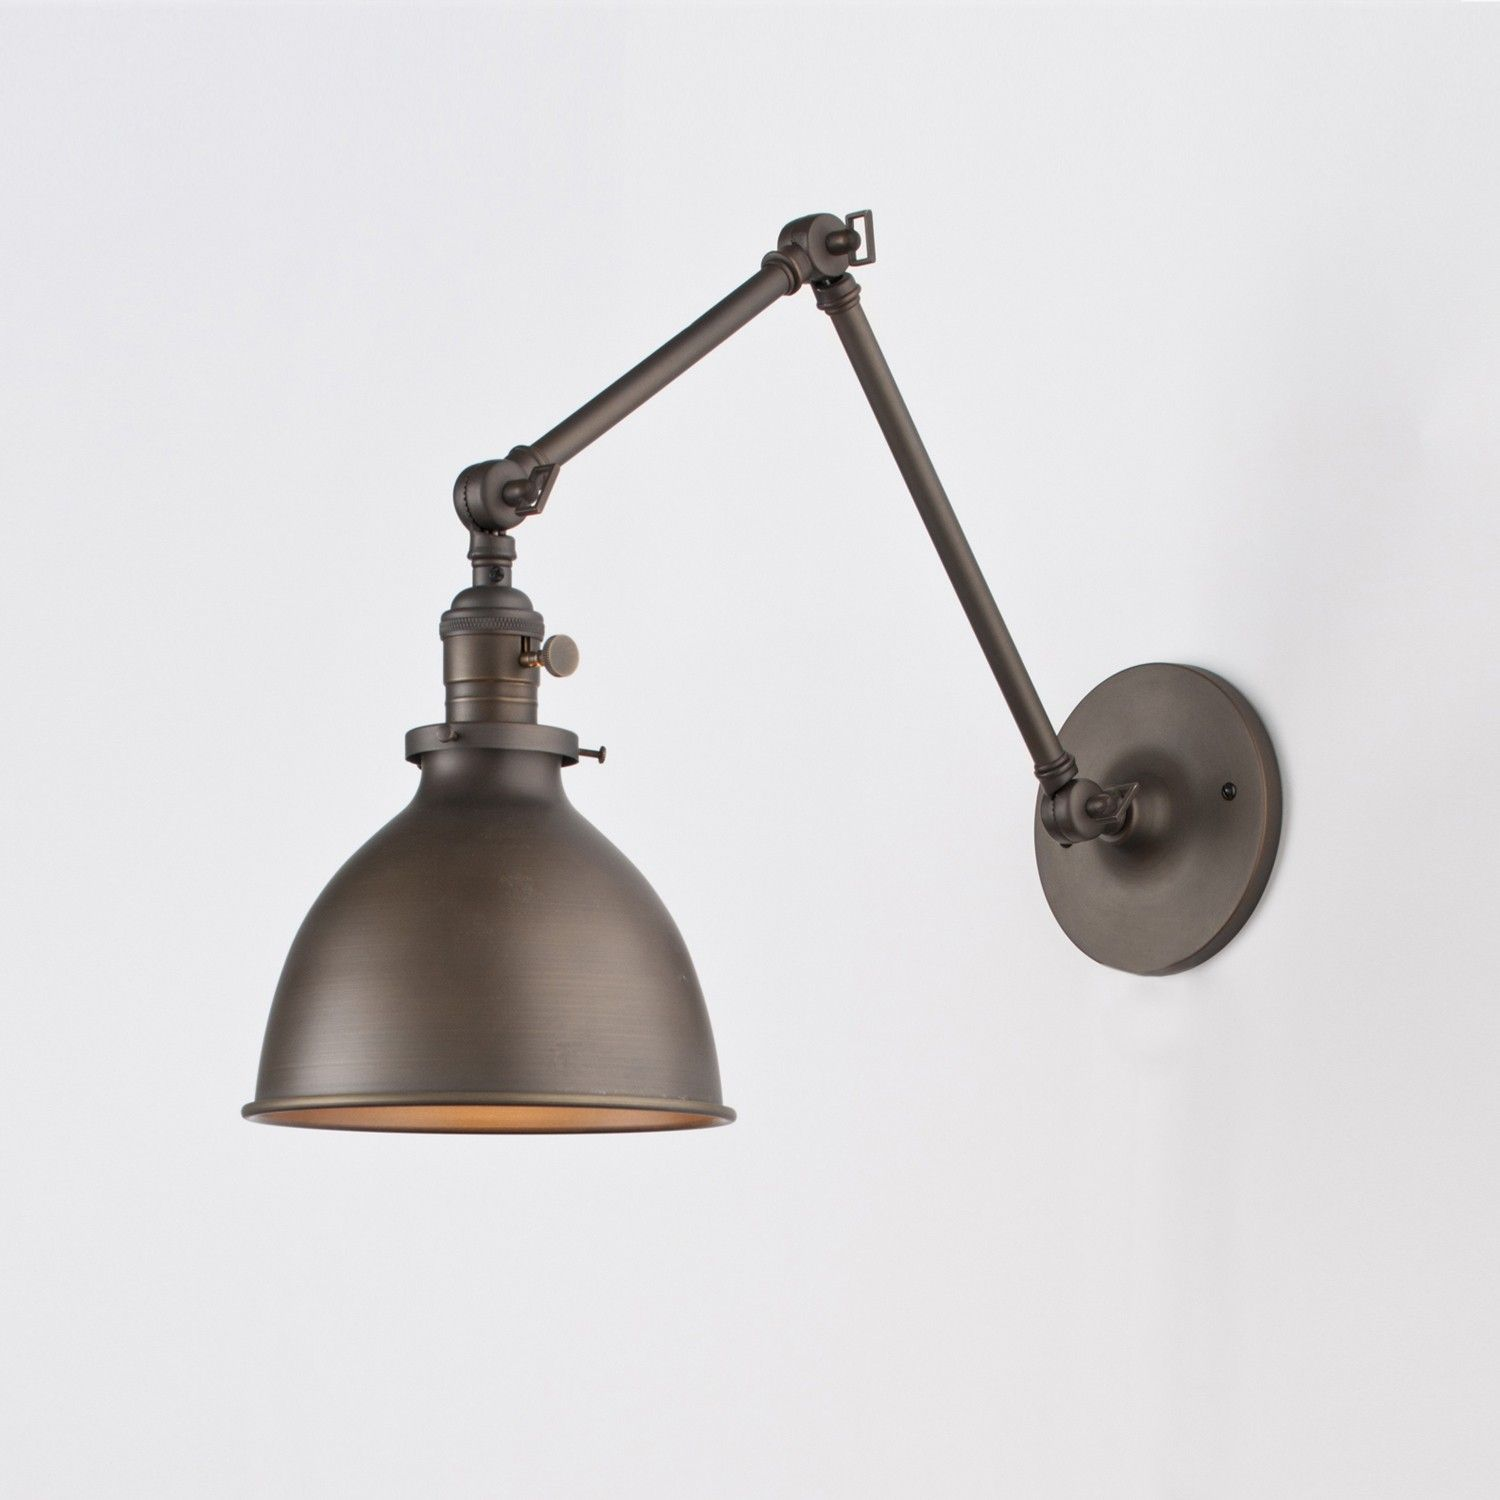 Factory shade no 3 painted schoolhouse electric wall sconces factory metal light shade factory shade no 3 schoolhouse electric supply co aloadofball Image collections